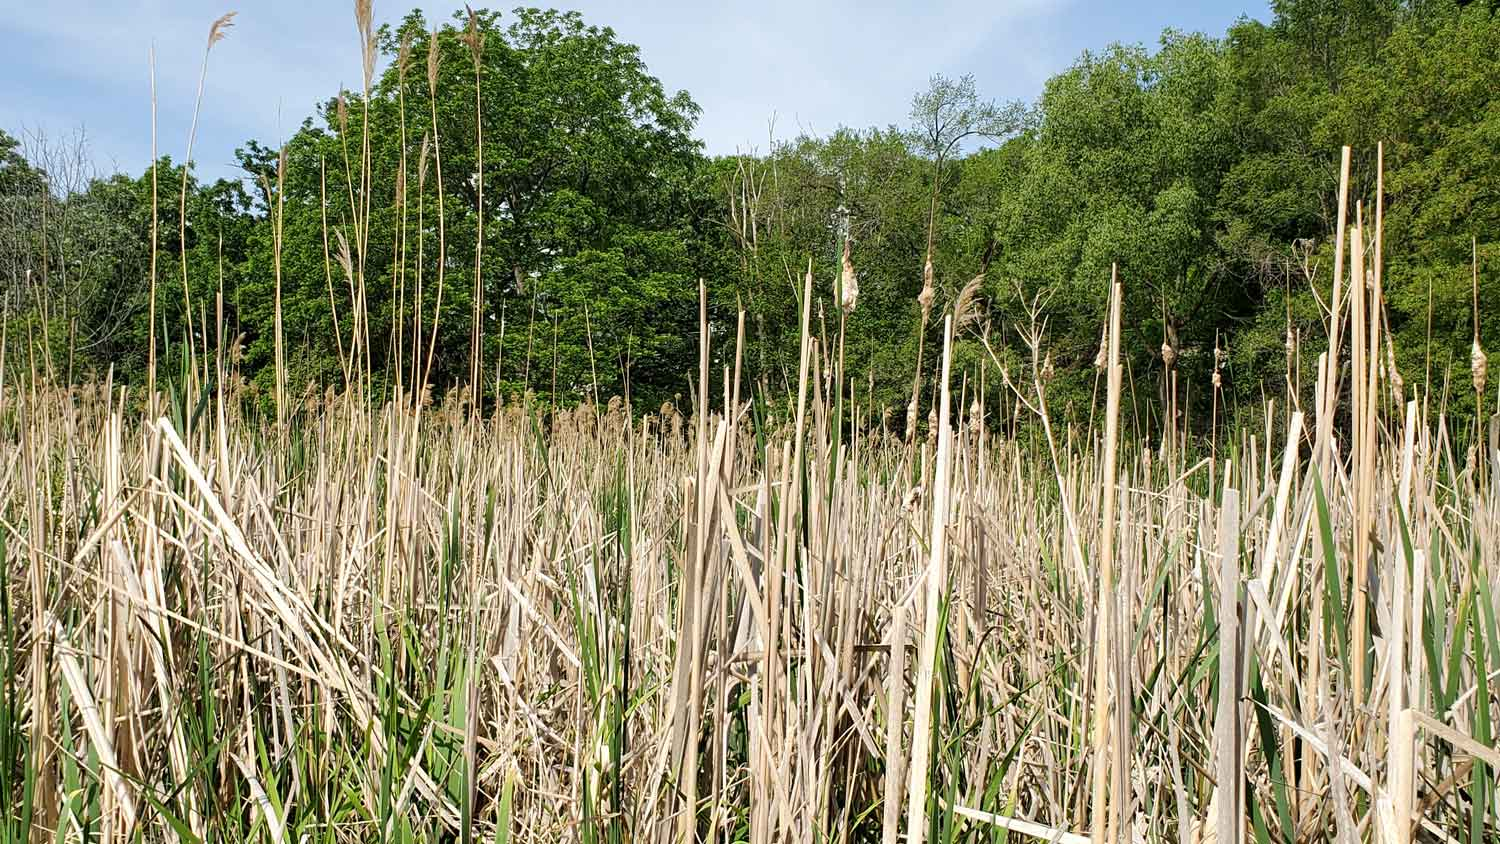 View through swampy reeds against backdrop of trees at Veteran Acres Park.